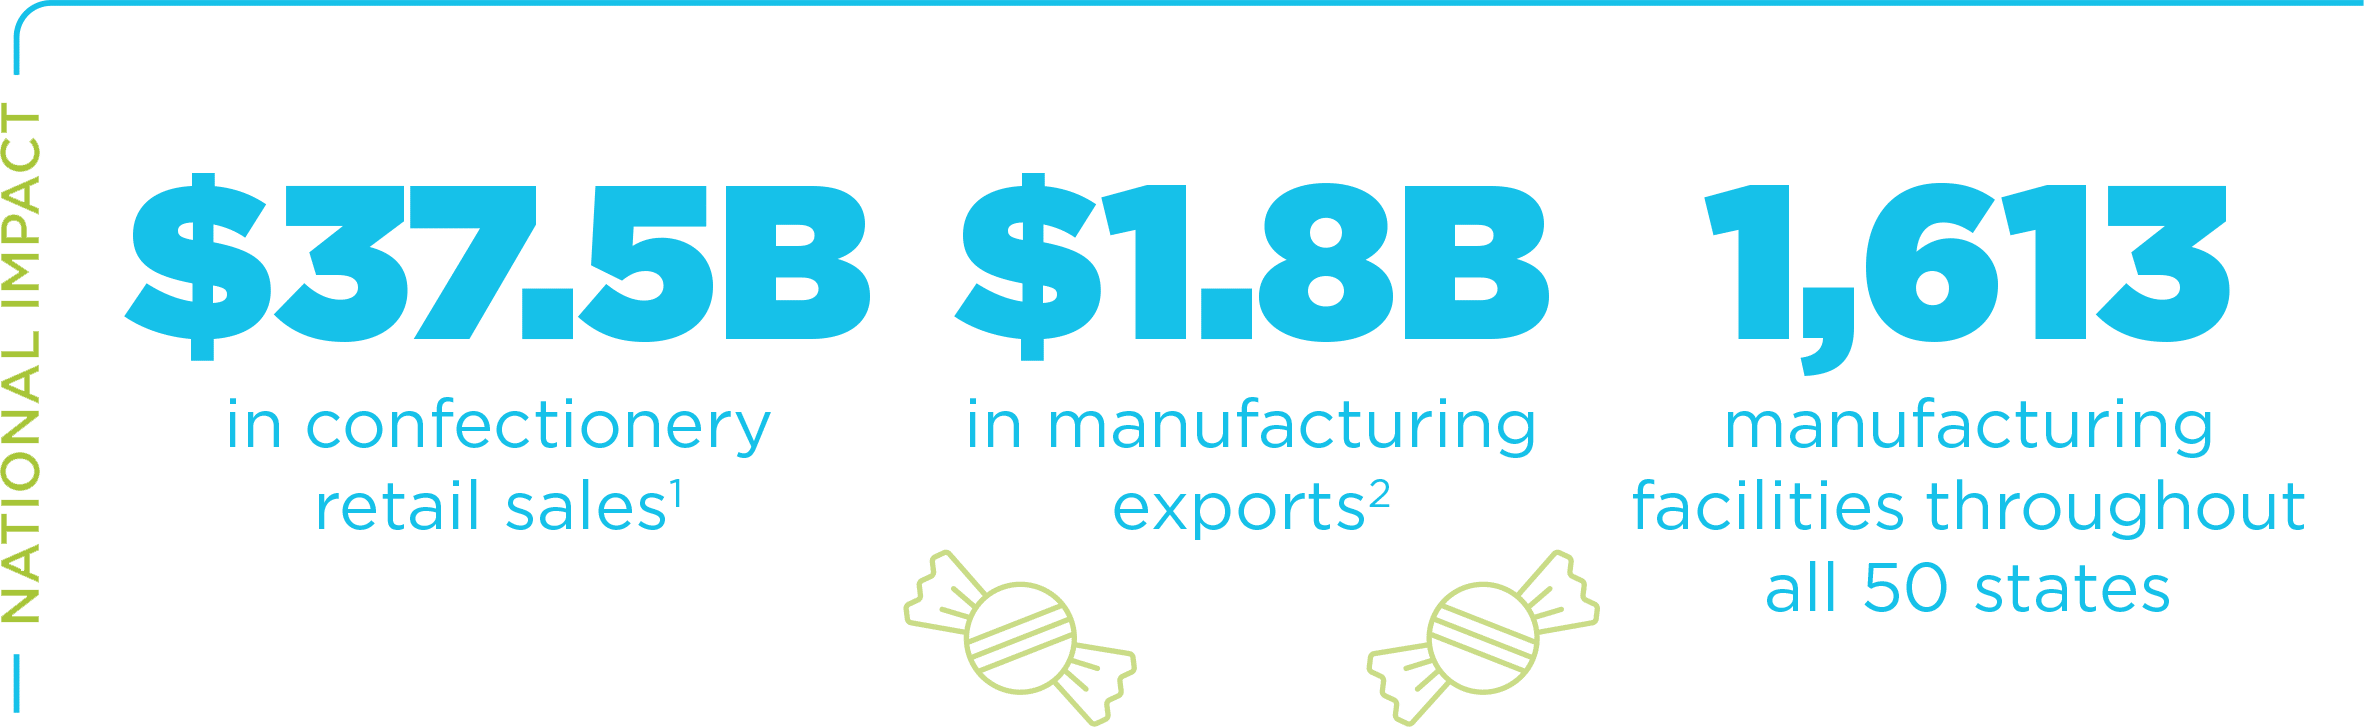 National Impact: $37.5B in confectionery retail sailes; $1.8B in manufacturing exports; 1,613 manufacturing facilities throughout all 50 states